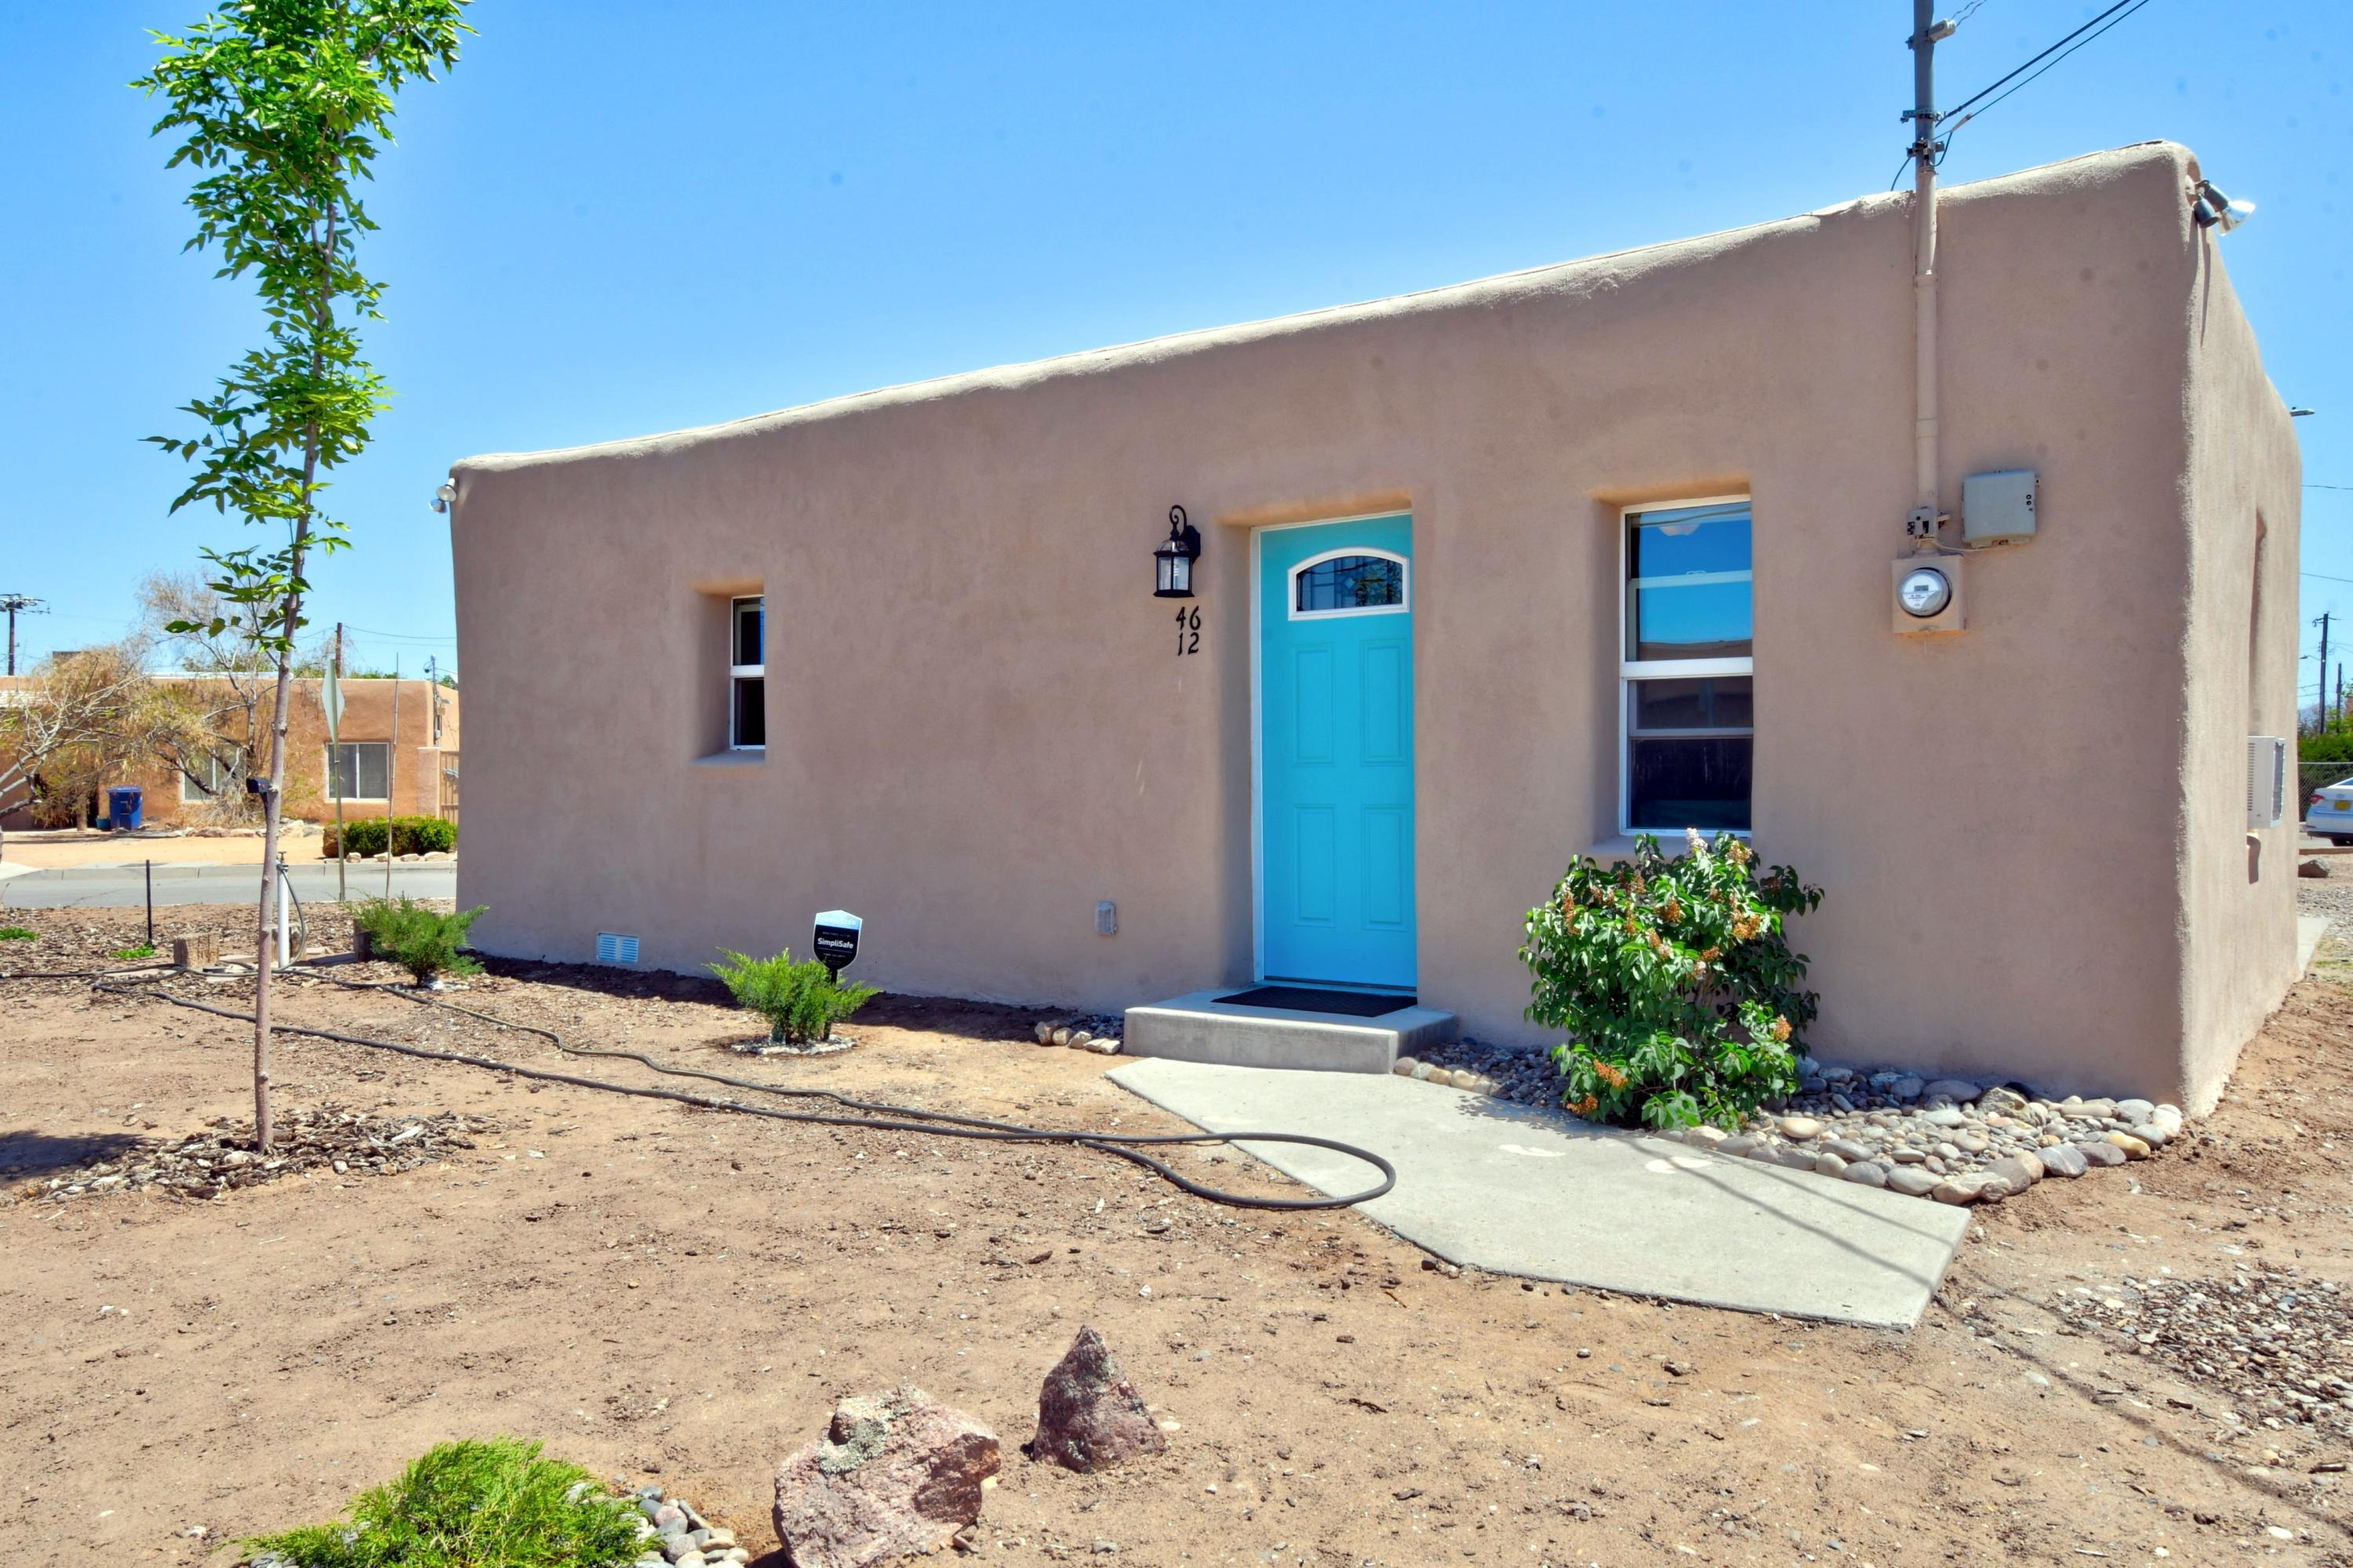 North Valley Gem!  This cute Old Adobe has everything you need! Since May of 2019 this home has been updated to make IT shine!  Updates include Footings, Floor joists, Sub-flooring, Vinyl Plank Flooring, Windows,  Stackable Washer/Gas Dryer, Hot Water Heater, Evaporative Cooler plus Two 12,000 BTU Window A/C units, 30,000 BTU Freestanding Gas Radiant Heater, Bathroom Vanity, Toilet, Tile Shower, Kitchen Cabinets, Countertops, Stainless Steel, Gas Stove, Microwave, Quiet Dishwasher, Refrigerator. Garbage Disposal, Light Fixtures, Exterior Metal Doors, Main Water Line, Landscape Plants, Circular Driveway and Storage Shed! This property sits perfectly on the lot to allow for enough room for an addition with proposed plans, or Agricultural use. The property is Zoned R-A.